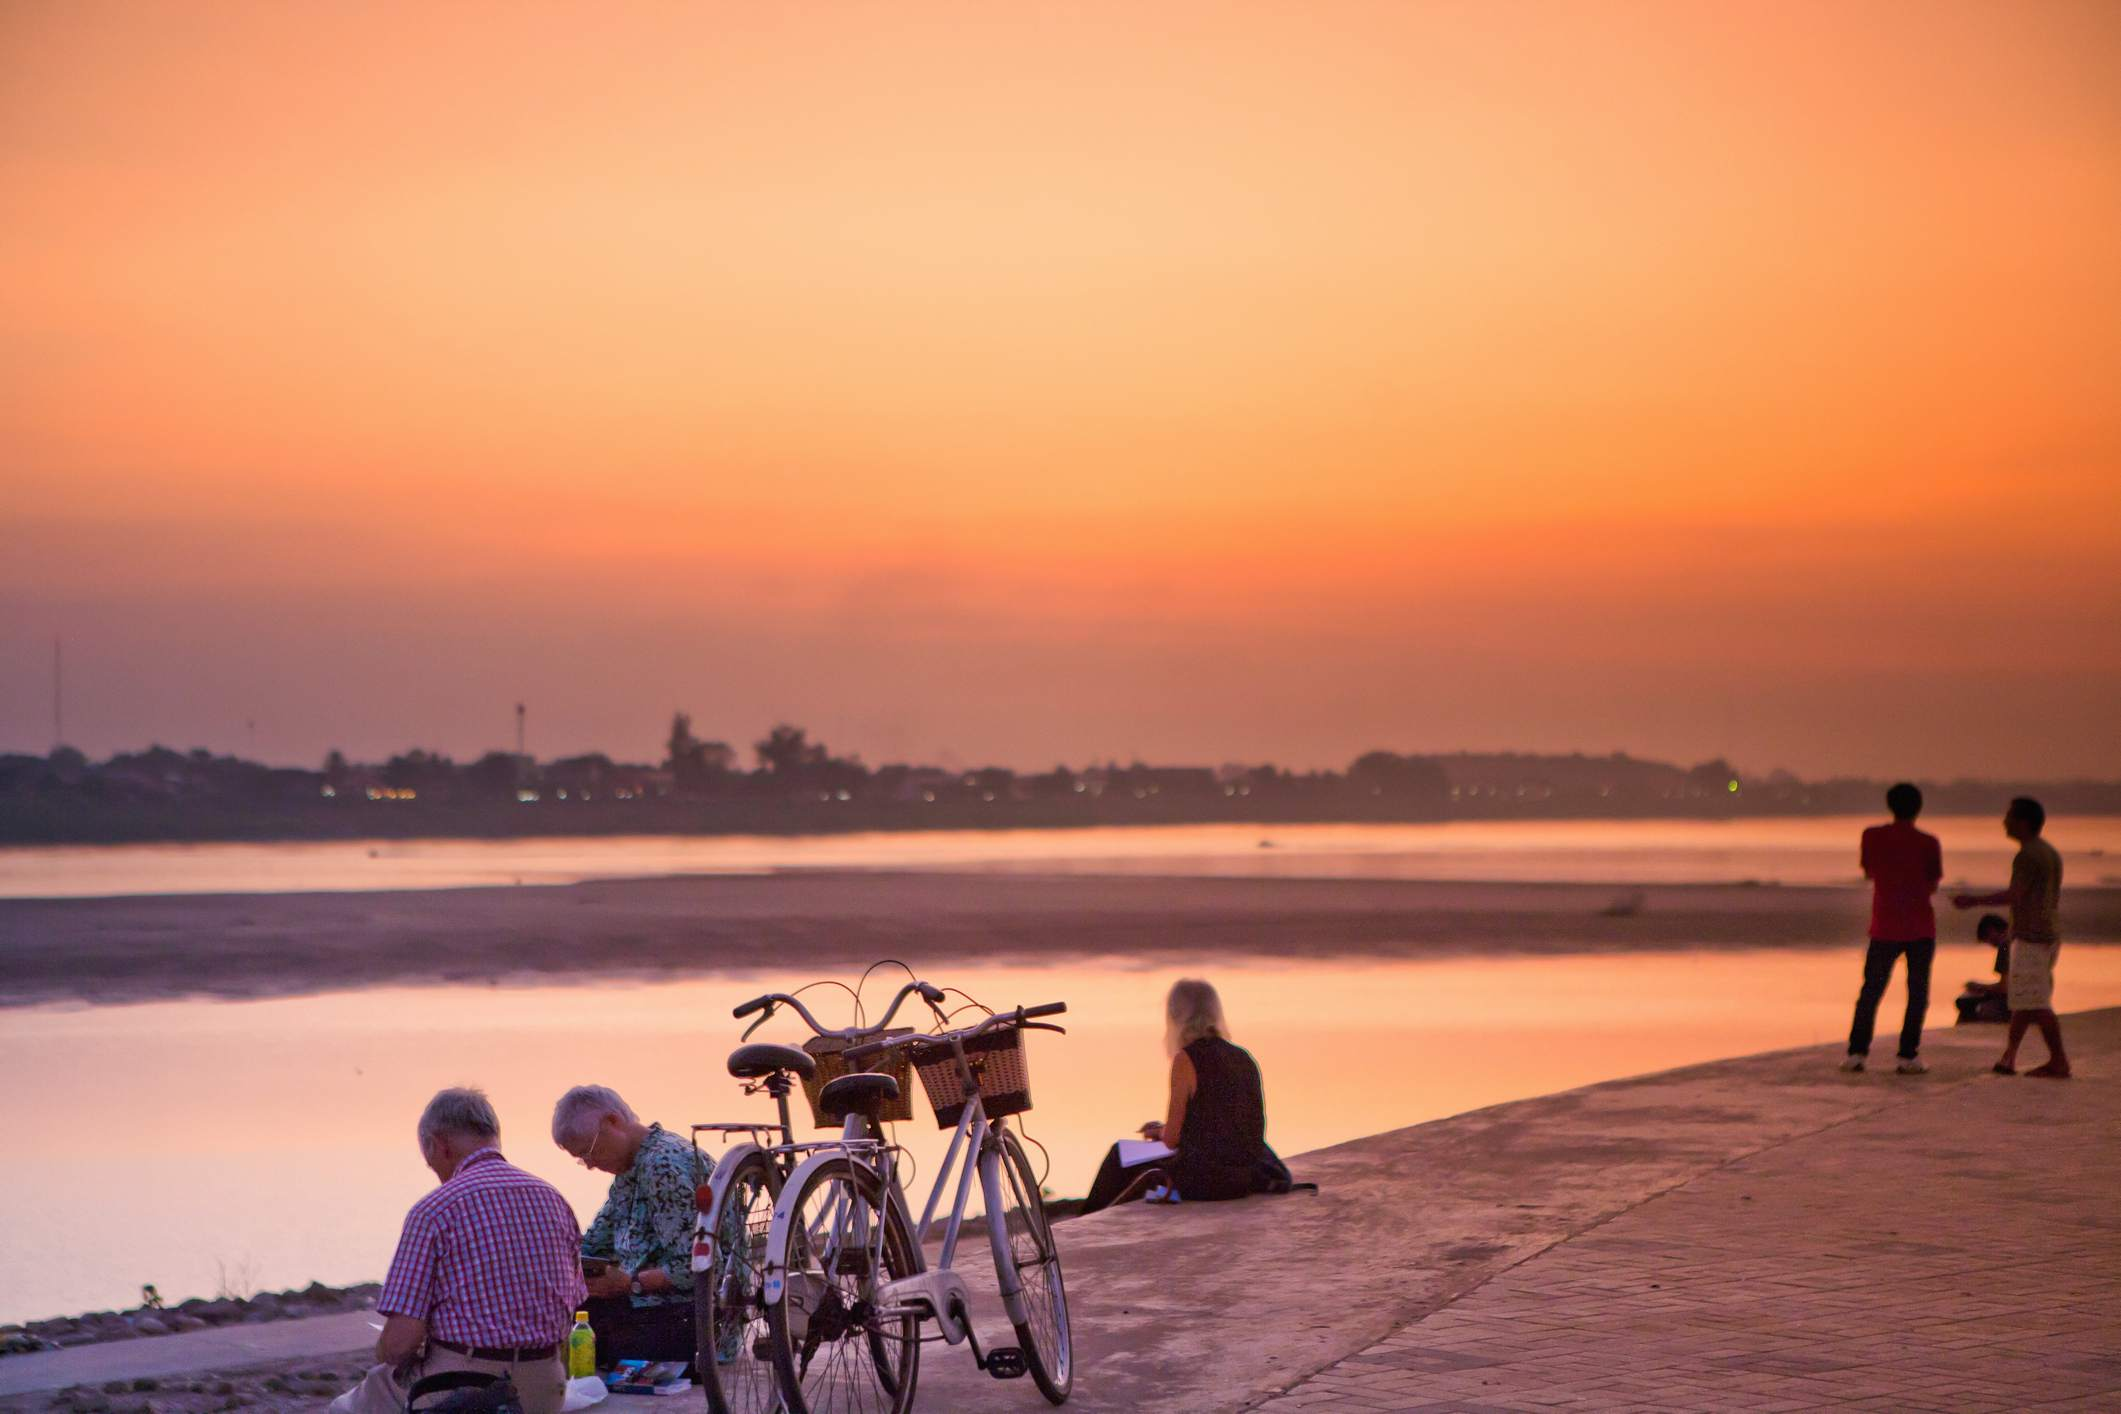 Watching a sunset on the Mekong River's Vientiane side